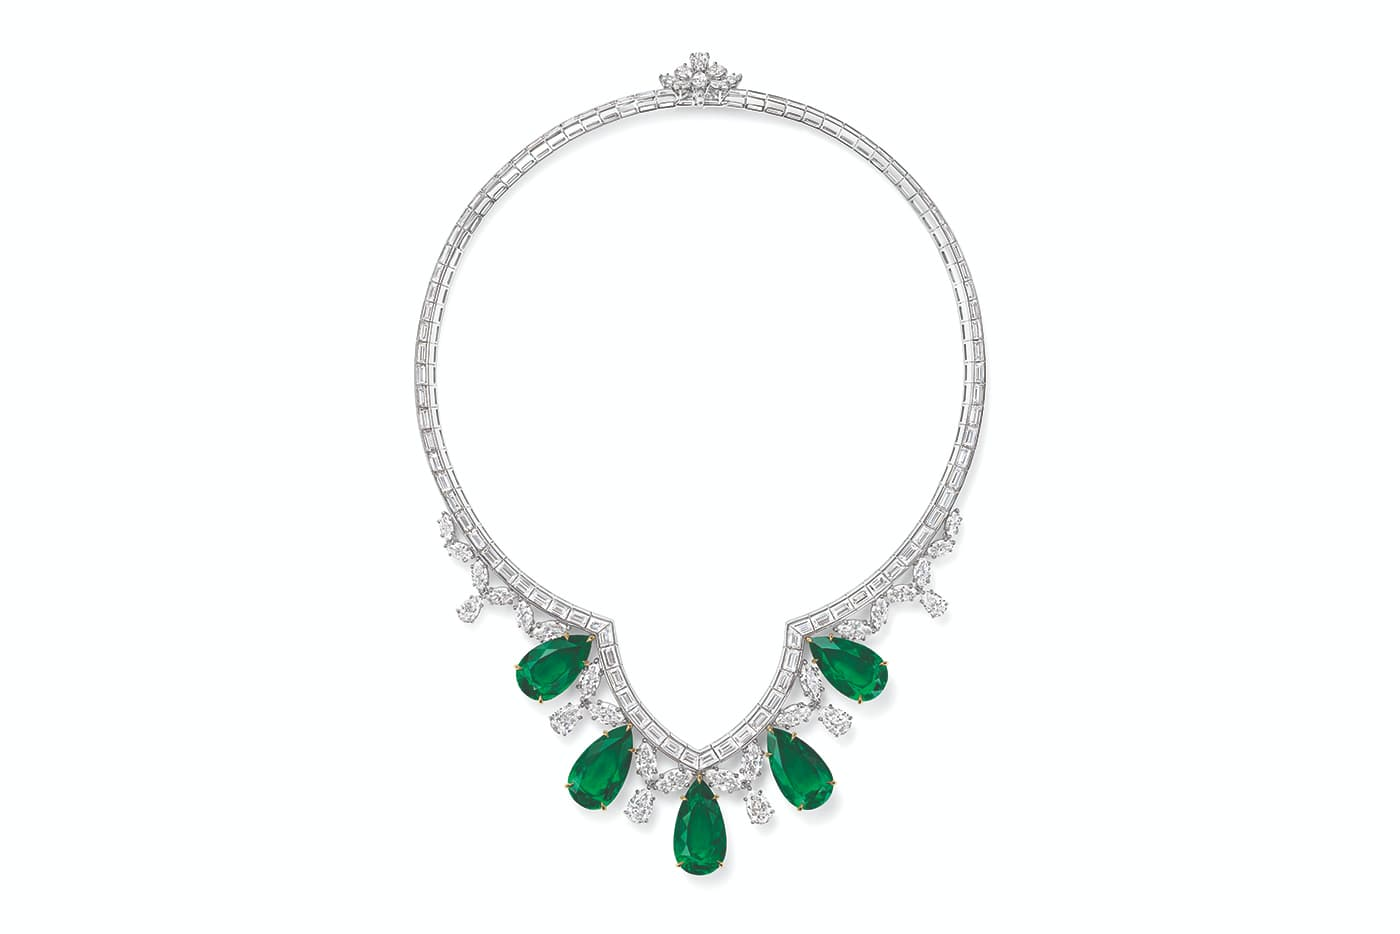 Harry Winston 'New York' collection 'Cathedral' necklace with pear cut Colombian emeralds and diamonds in platinum